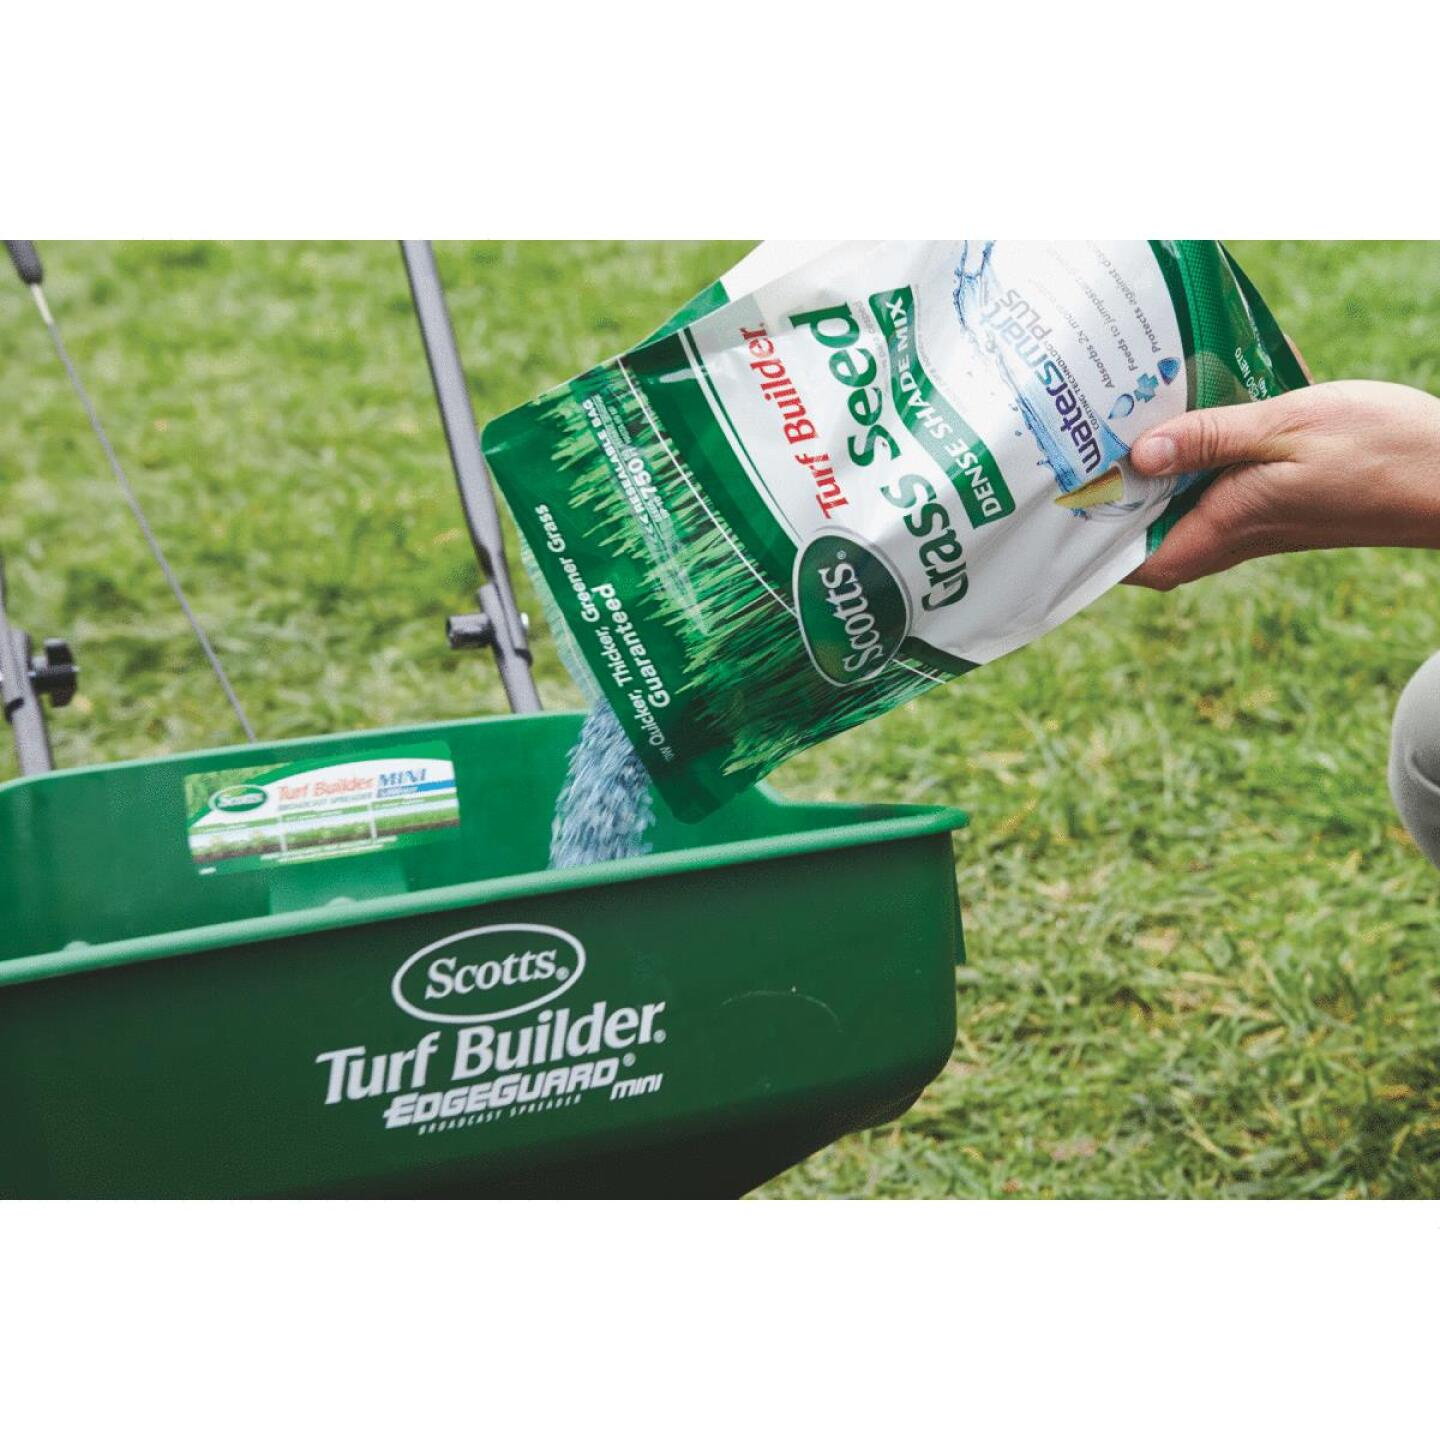 Scotts Turf Builder 3 Lb. Up To 750 Sq. Ft. Coverage Dense Shade Grass Seed Image 3